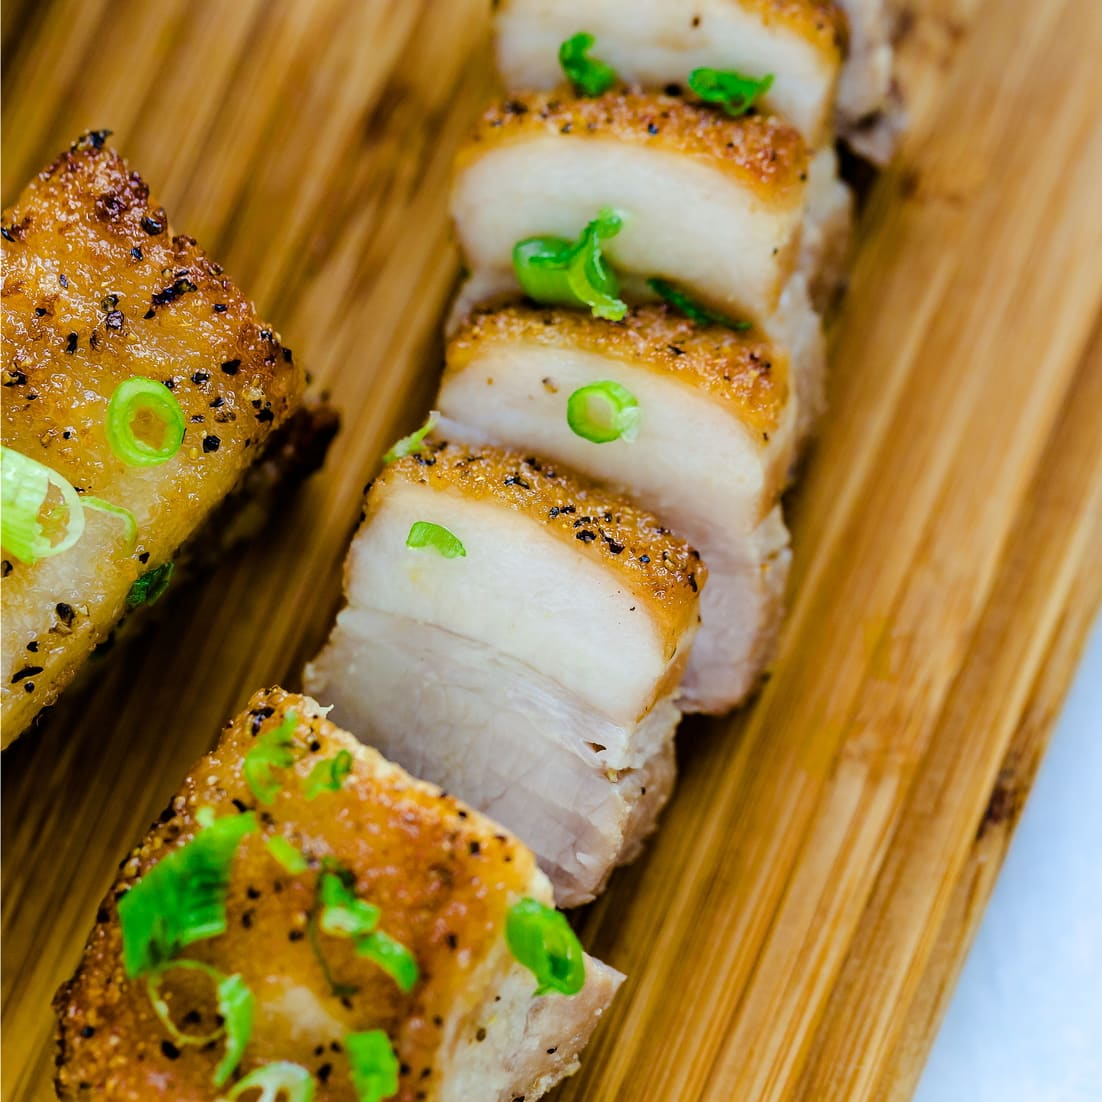 Crispy Pork Belly on serving plate with green onions sprinkled on top